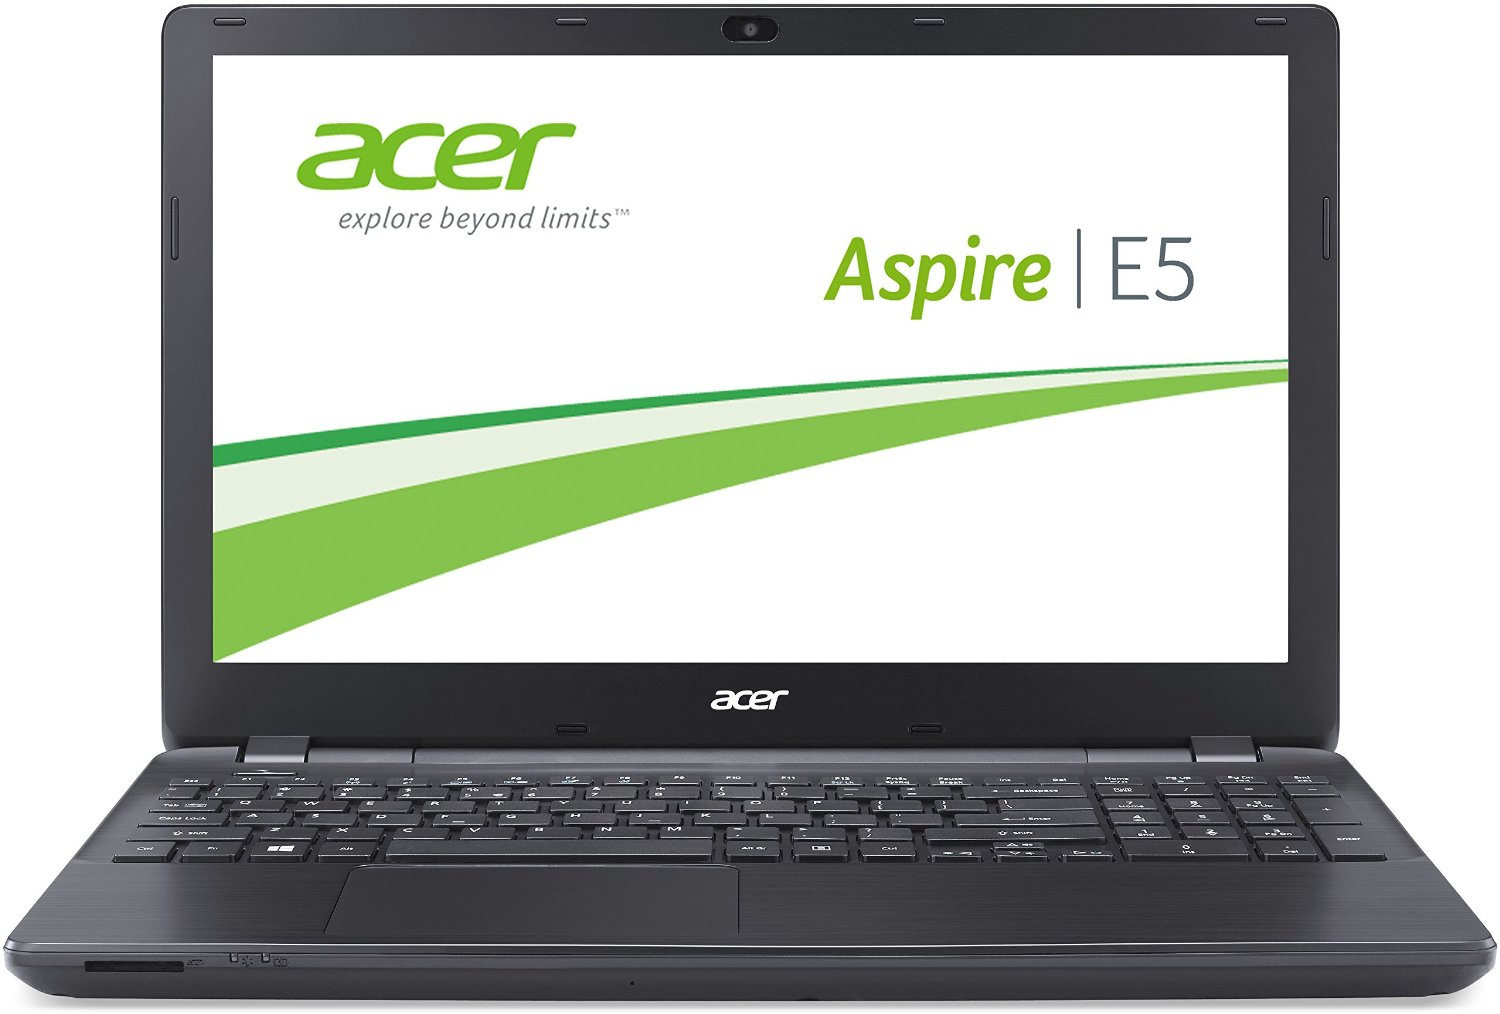 ACER ASPIRE E5-572G WINDOWS 10 DRIVER DOWNLOAD